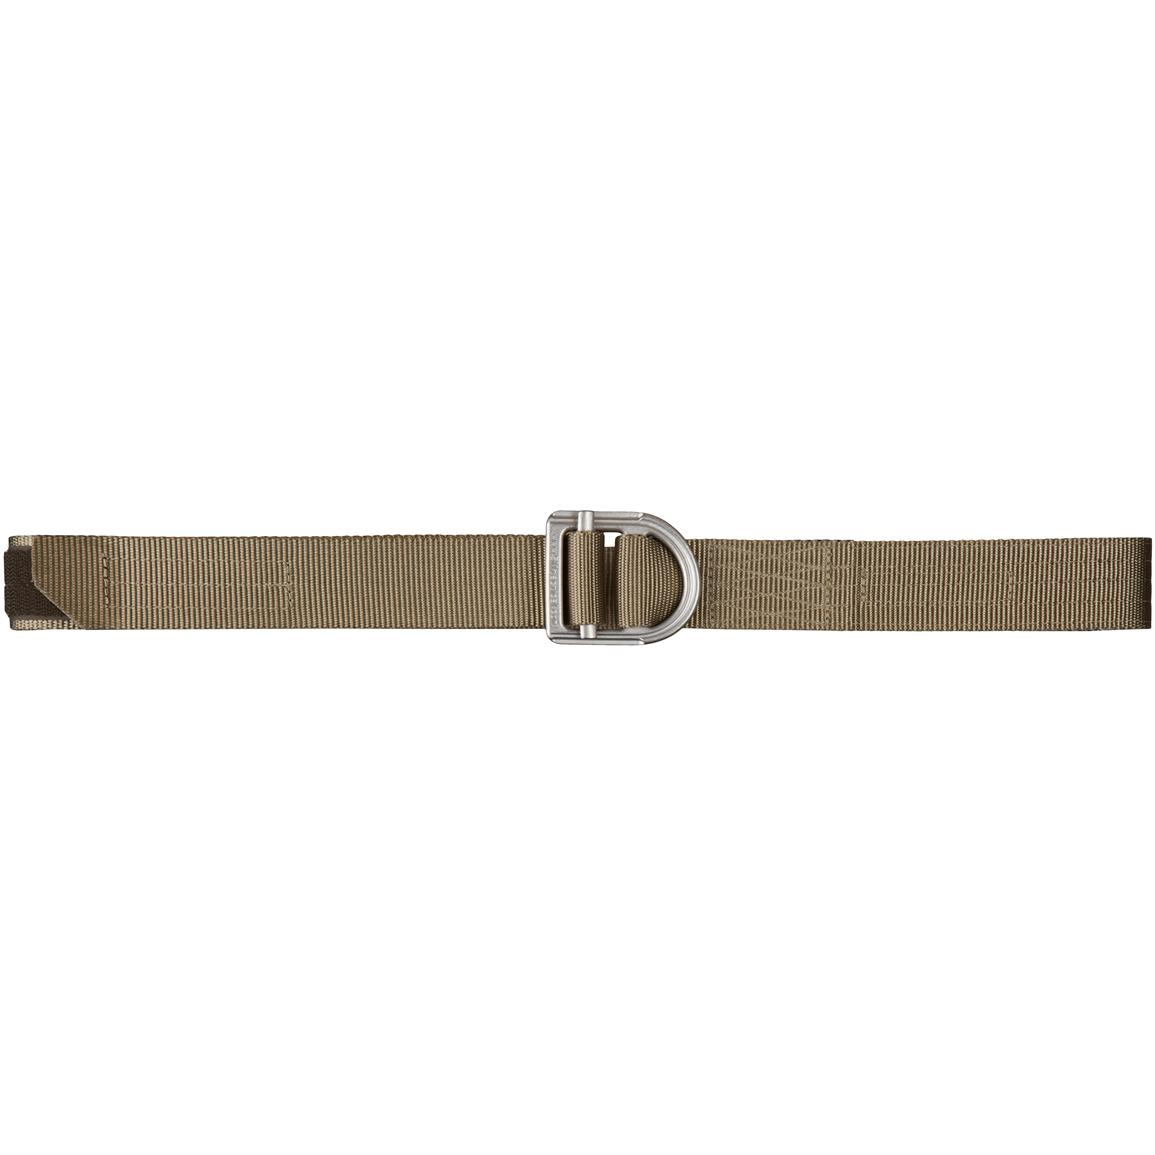 "5.11 Tactical 1 1/2"" Wide Trainer Belt, Sandstone"